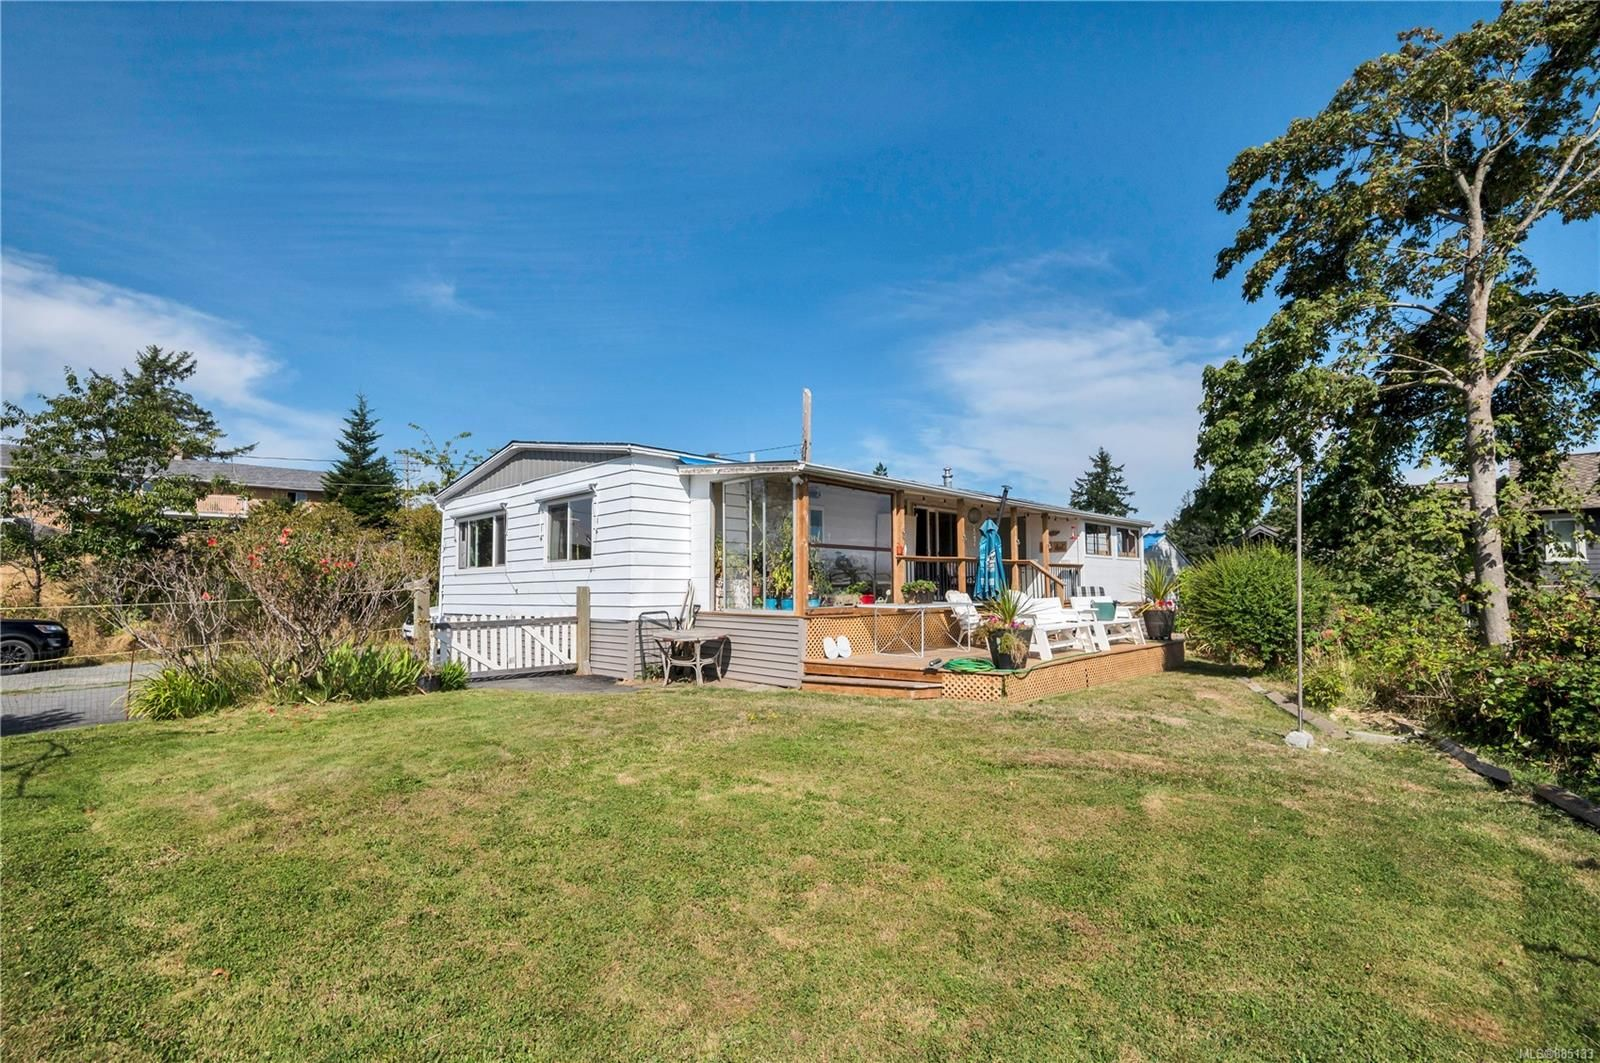 Main Photo: 1 1406 Perkins Rd in : CR Campbell River North Manufactured Home for sale (Campbell River)  : MLS®# 885133